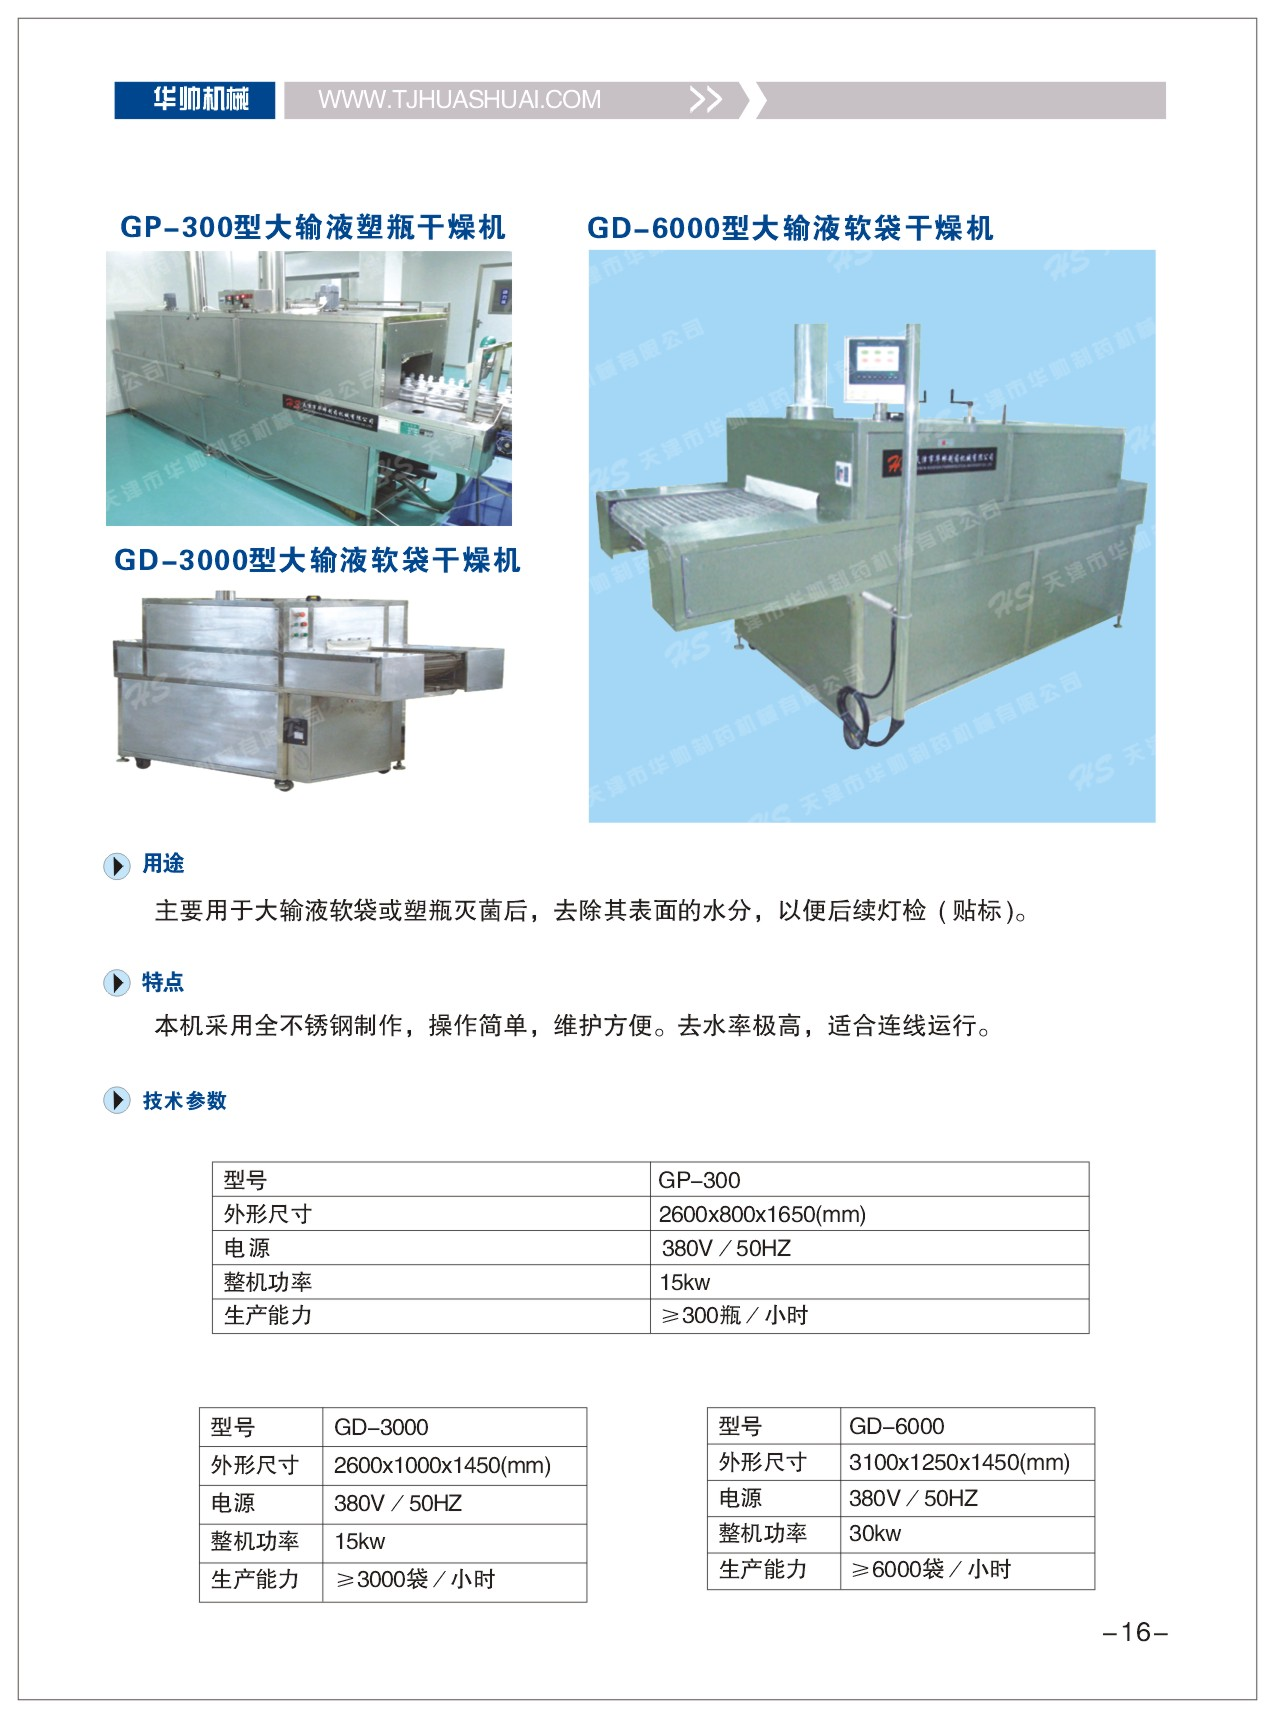 GD-6000 type big soft infusion bag dryer